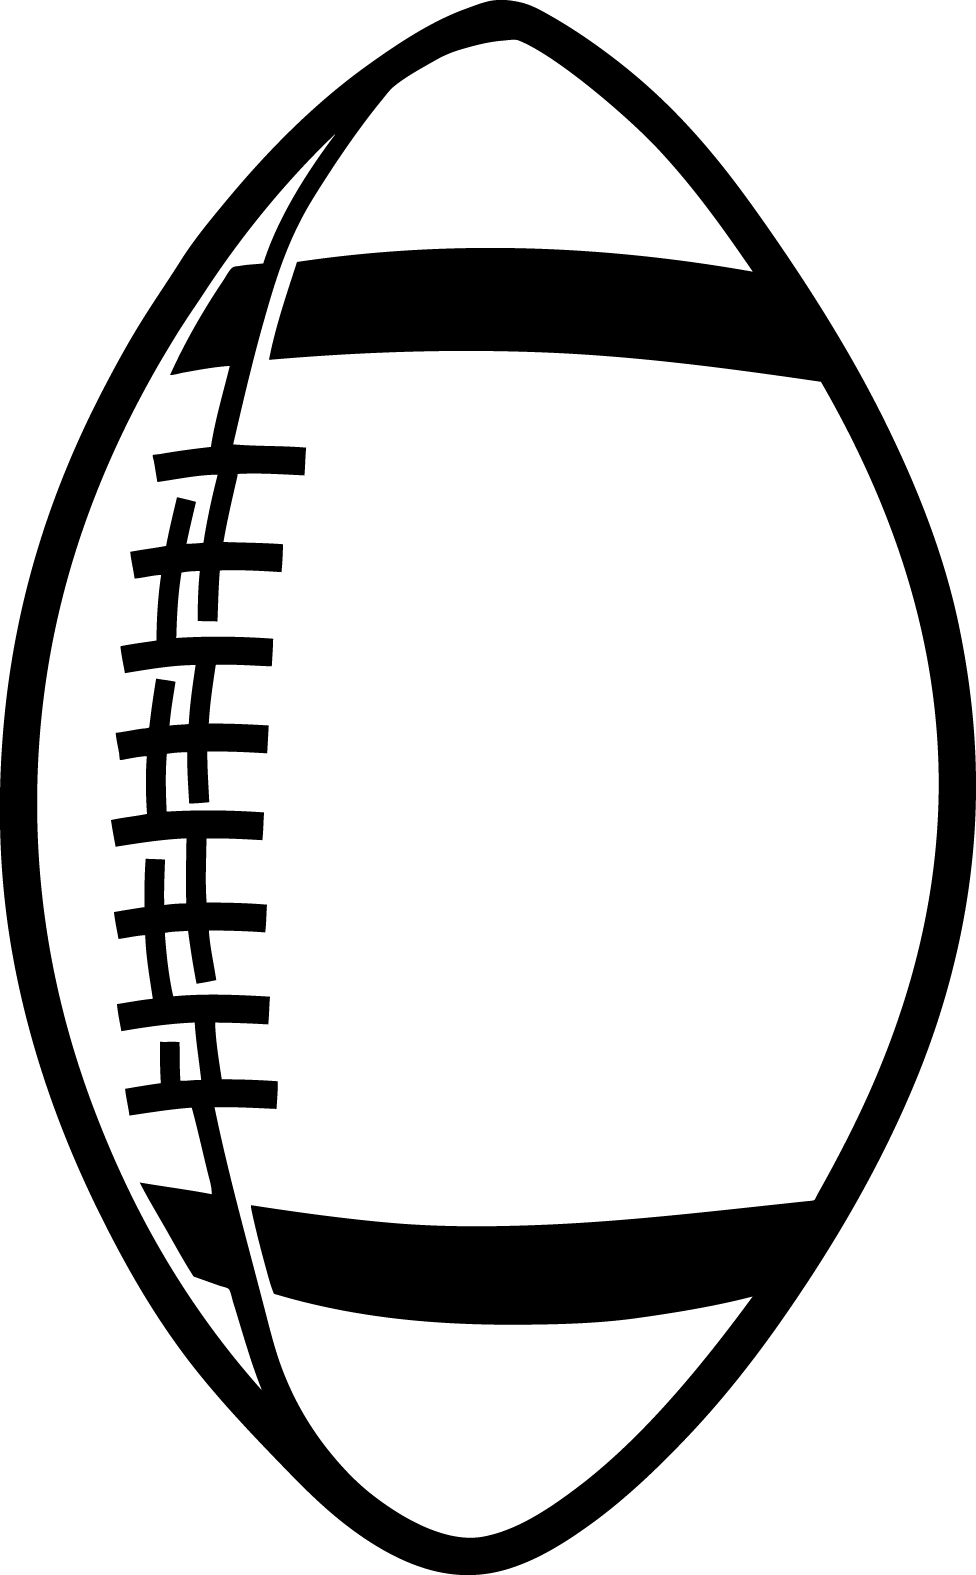 Clipart picture of a football vector black and white Dragonfly Outline Clipart | Clipart Panda - Free Clipart Images ... vector black and white